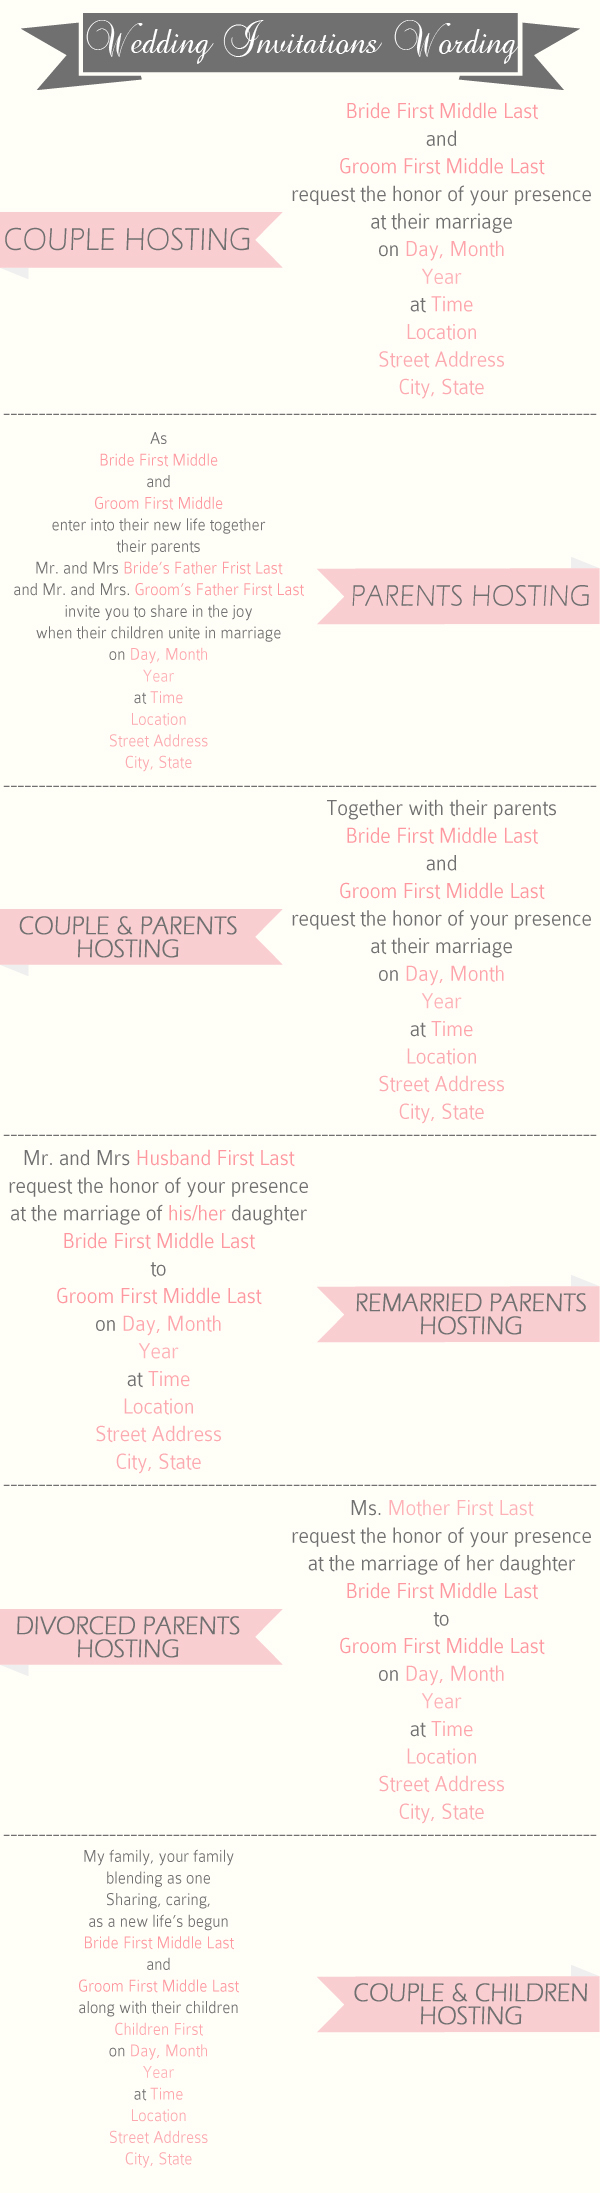 Couple Hosting Wedding Invitation Wording Wedding Invitation Wording Samples To Invite Guests